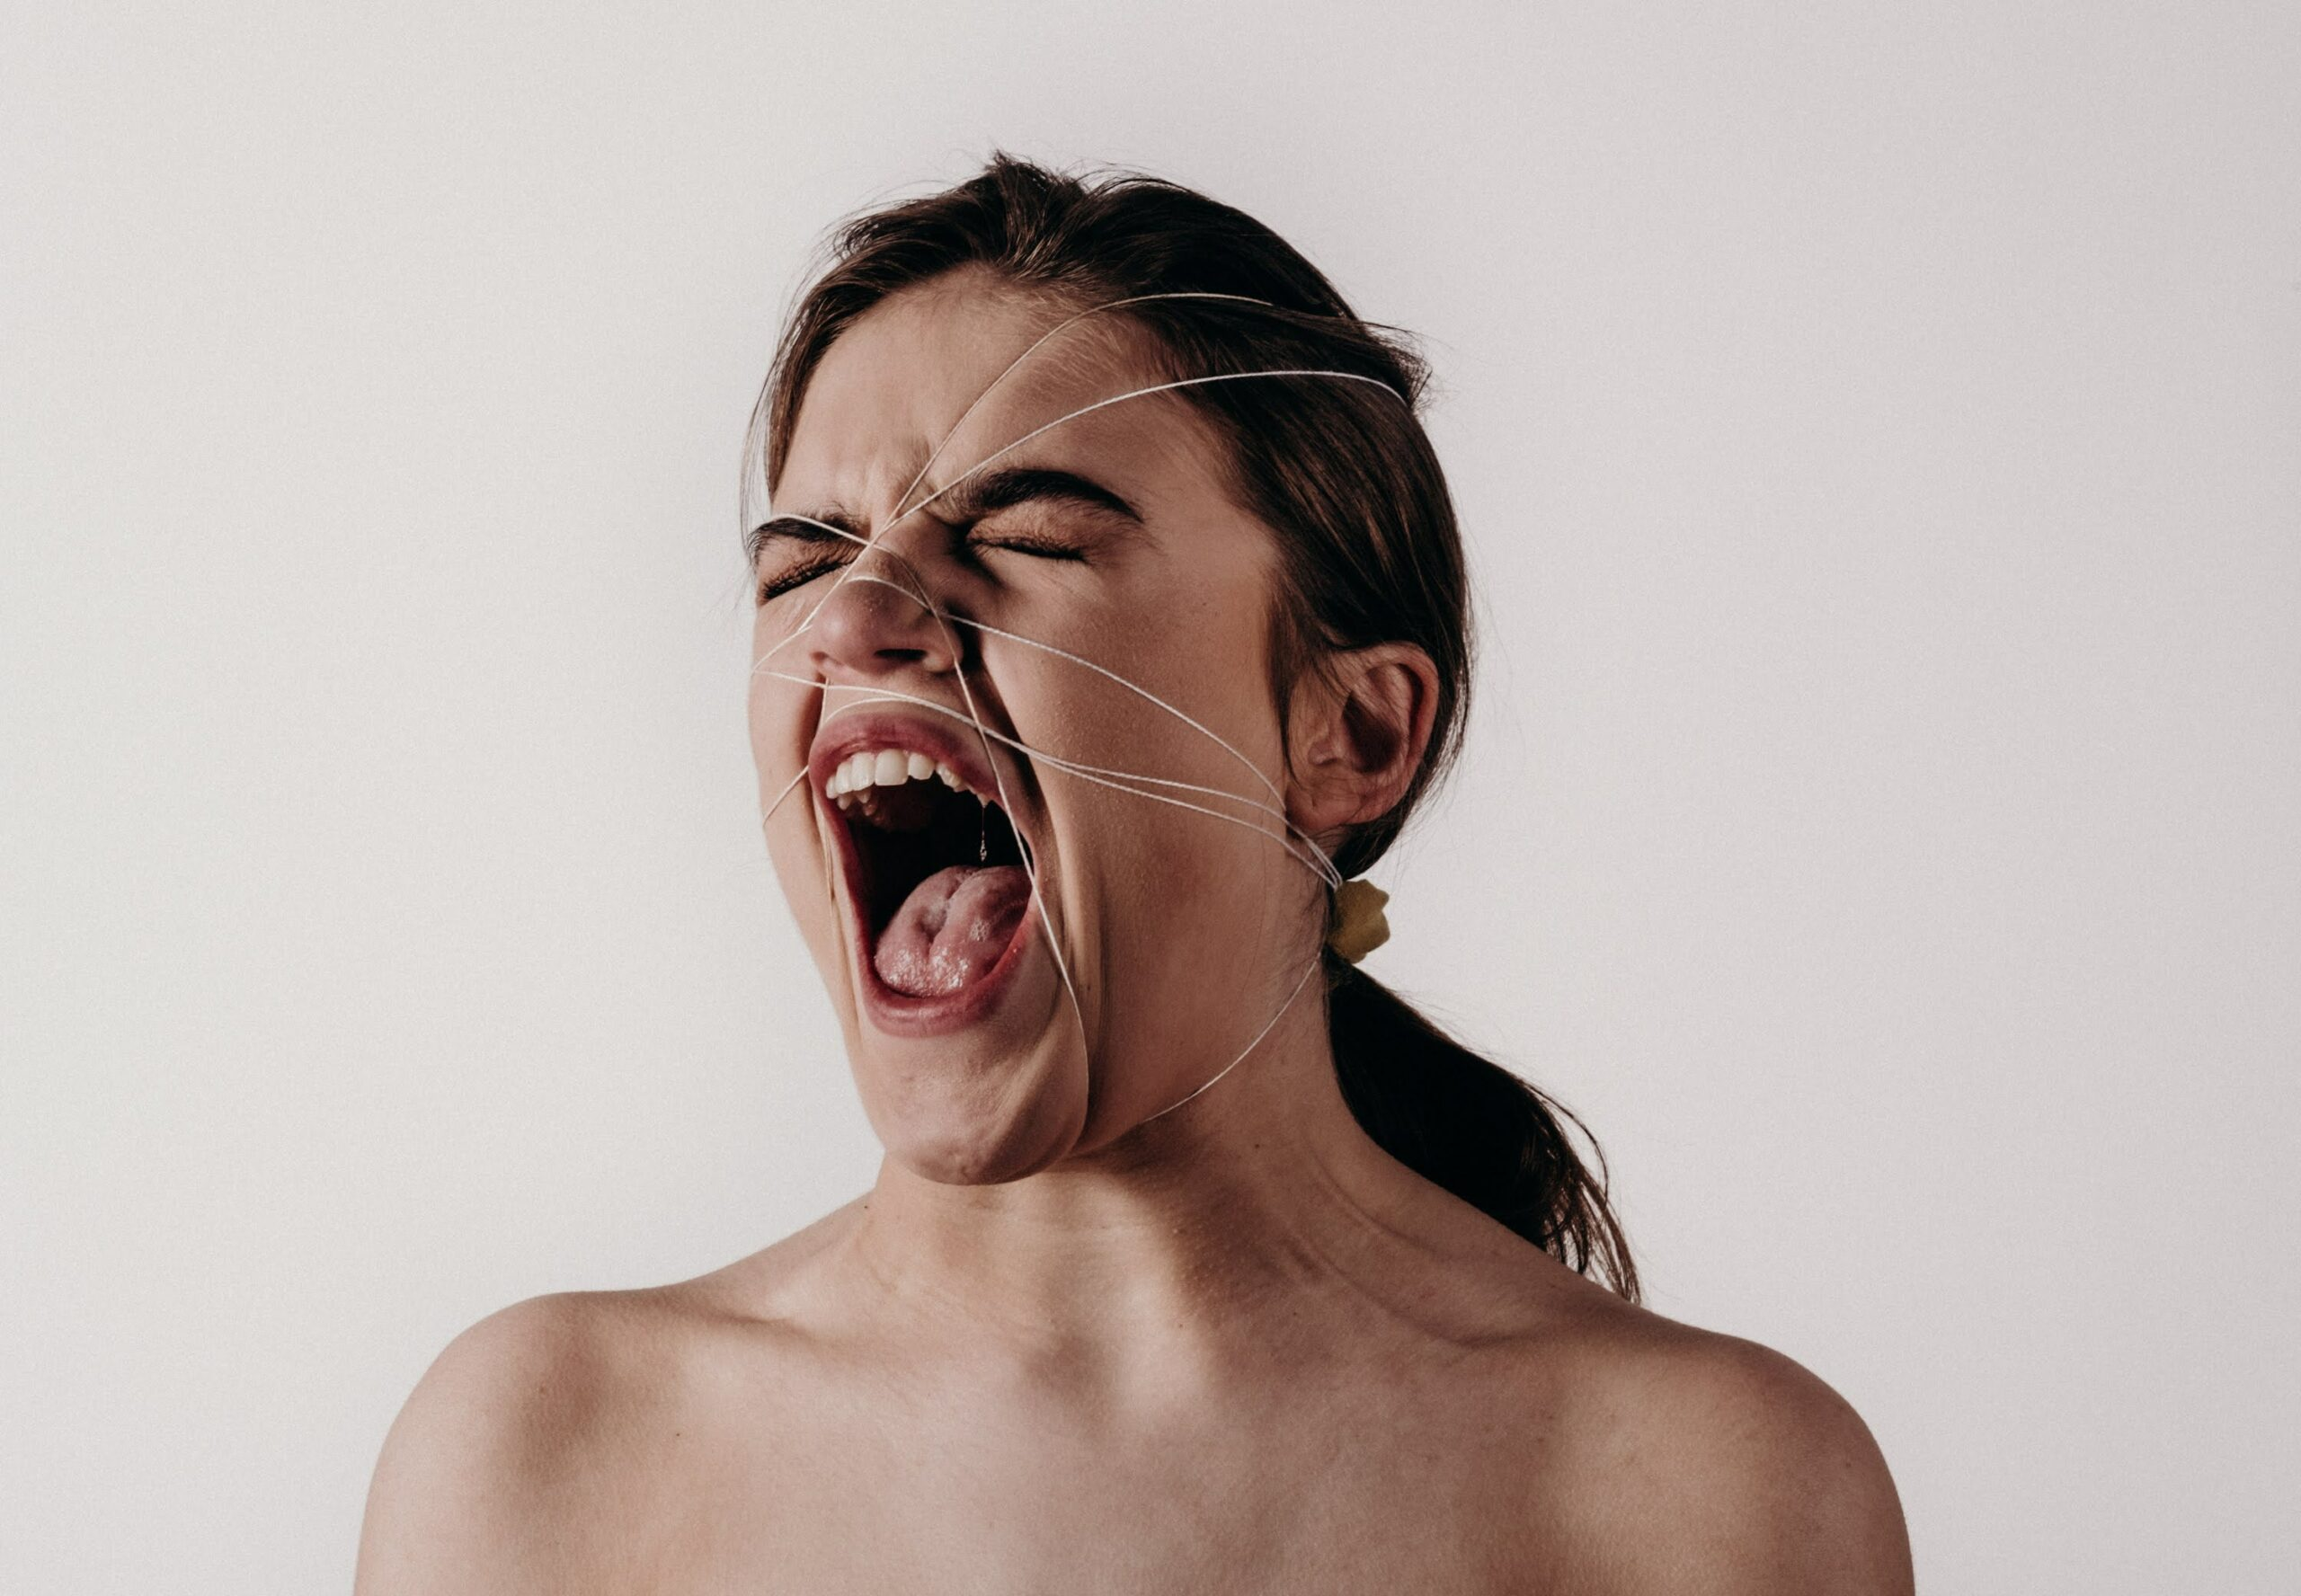 Woman with her head tied while screaming